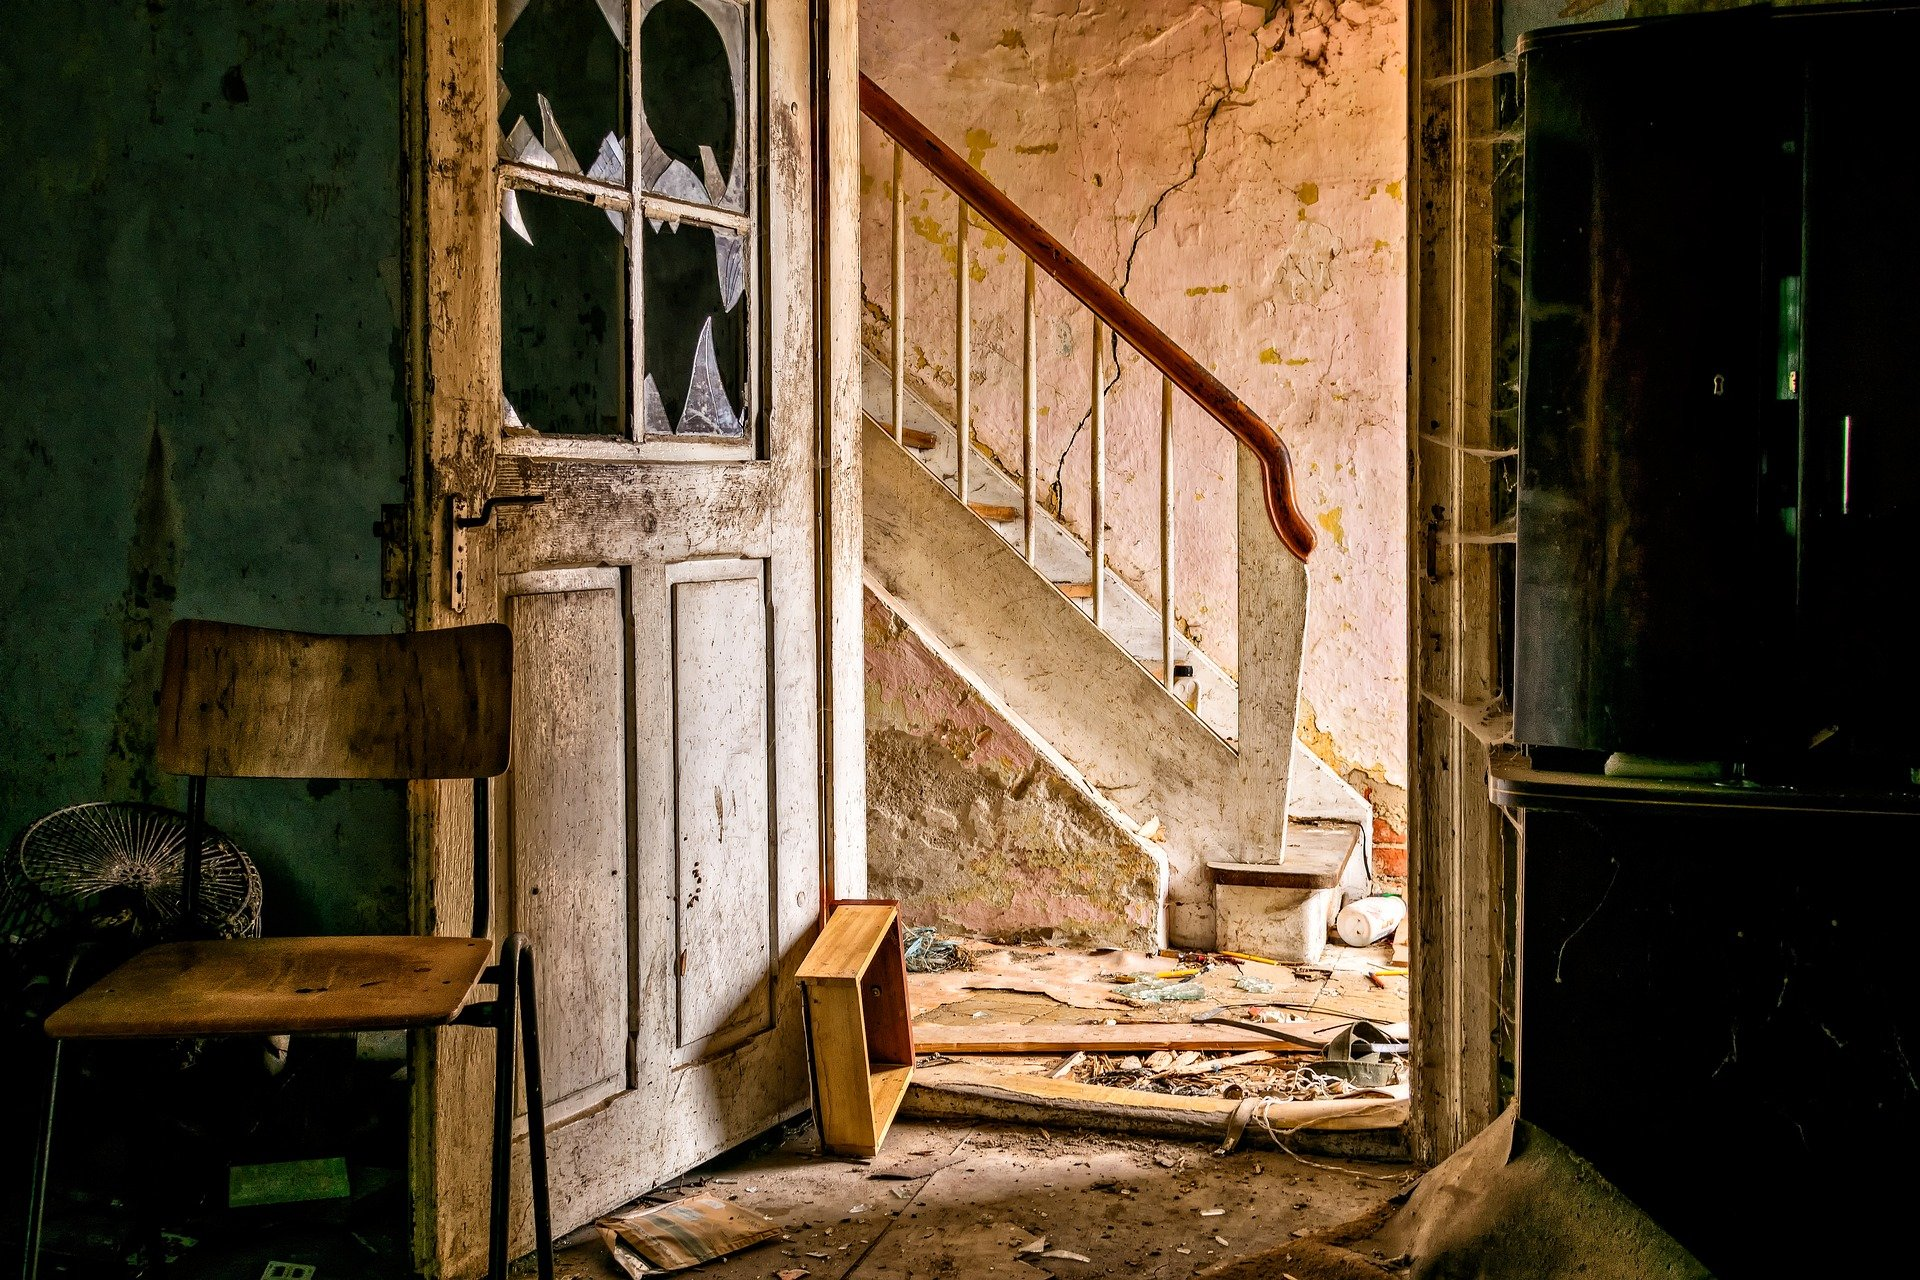 lost-places-3035877_1920